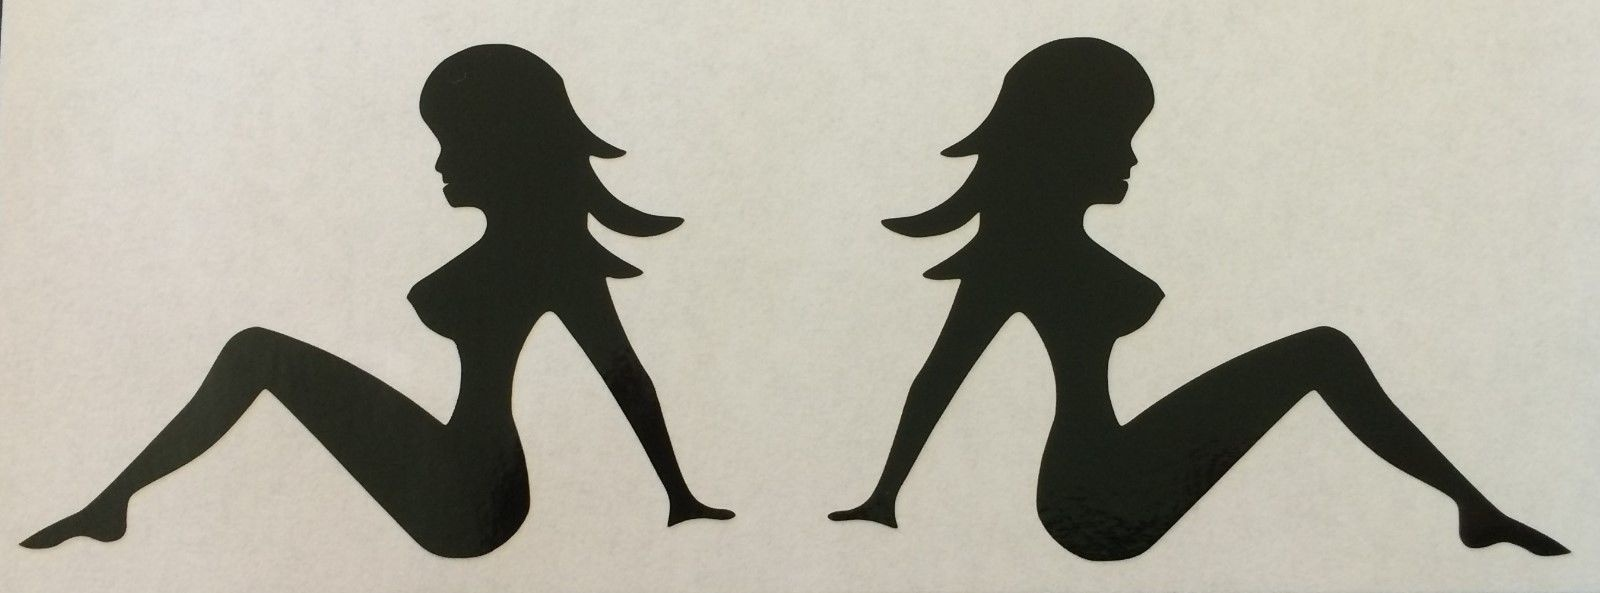 Mud Flap Girl Decal Your Choice Single Girl Car Truck Decal Sticker Graphic